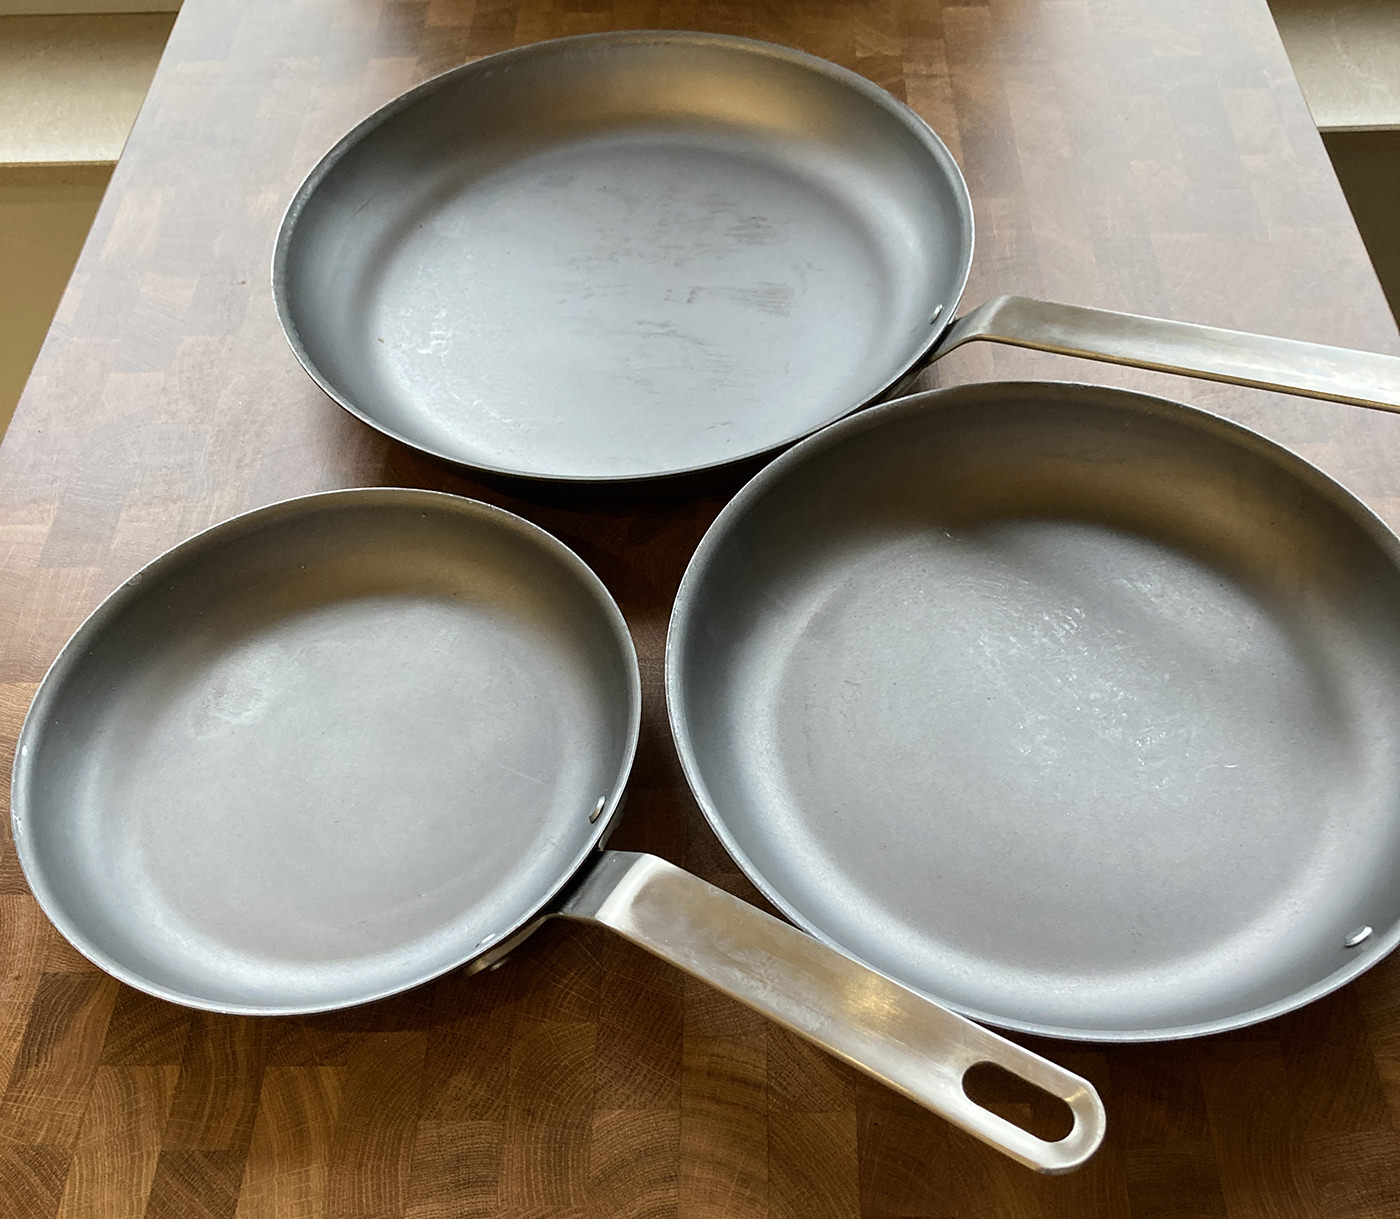 The Misen Carbon Steel Pan Unboxed